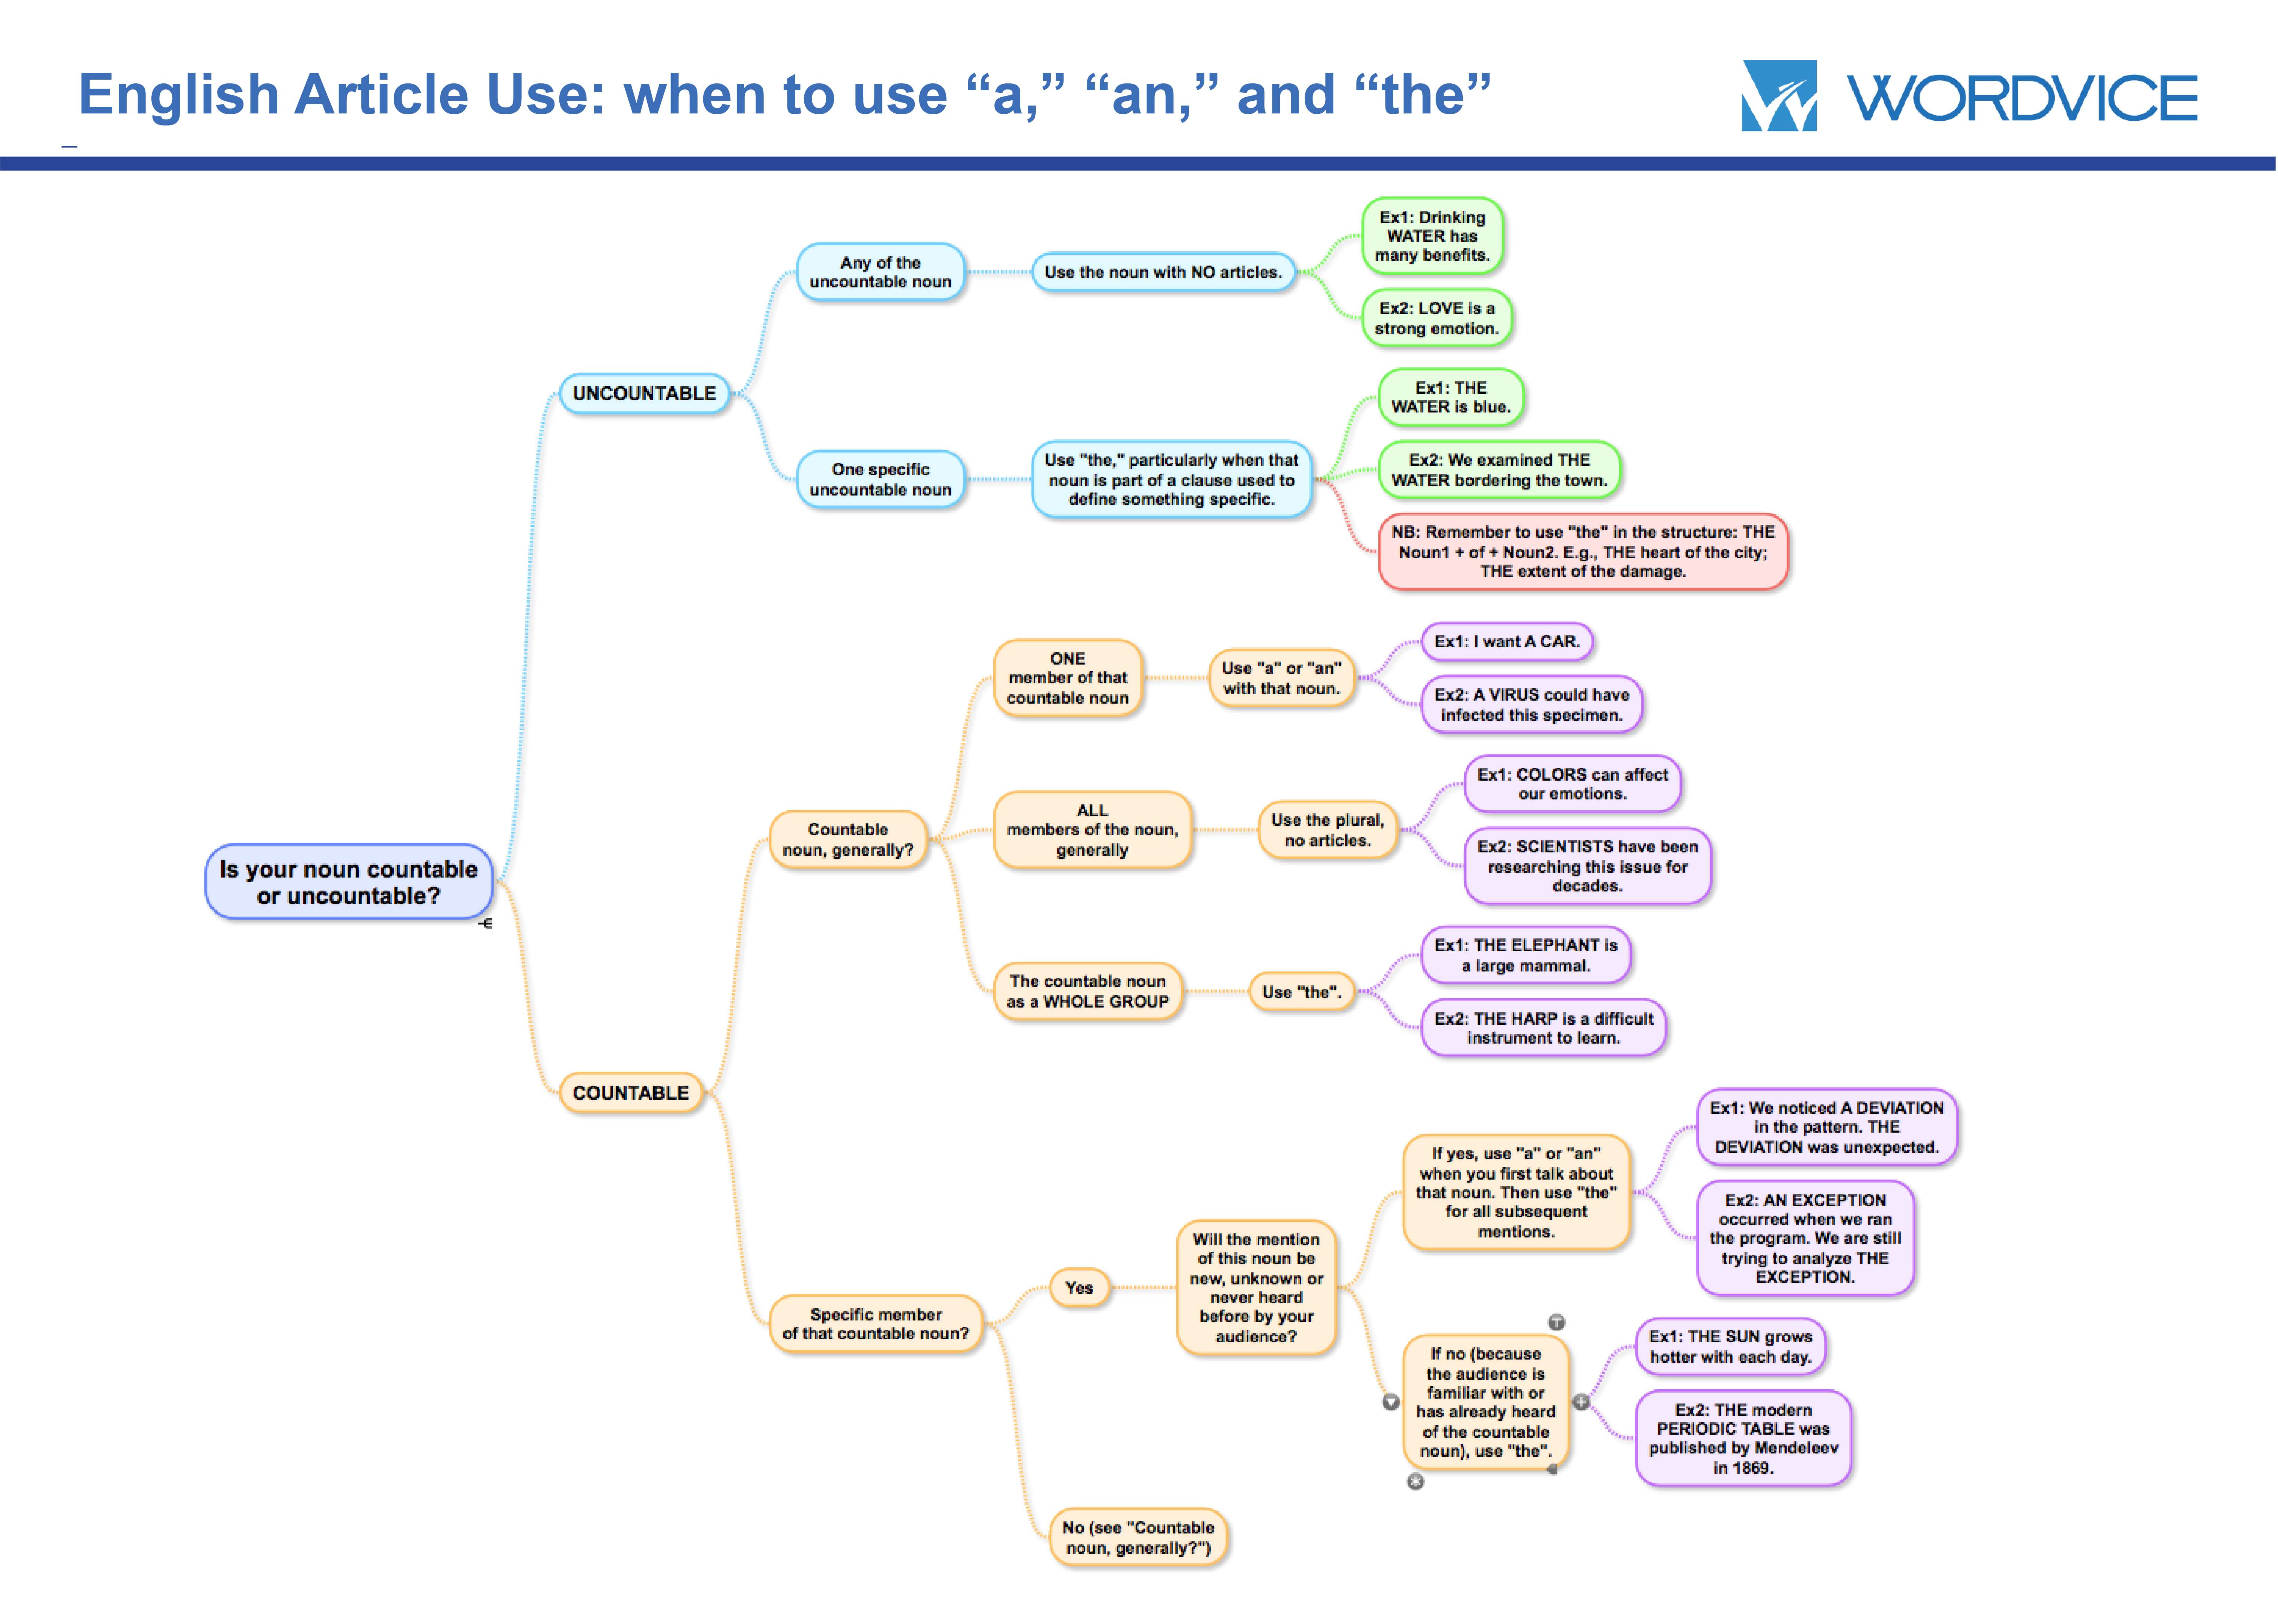 Grammar rules about how to use articles